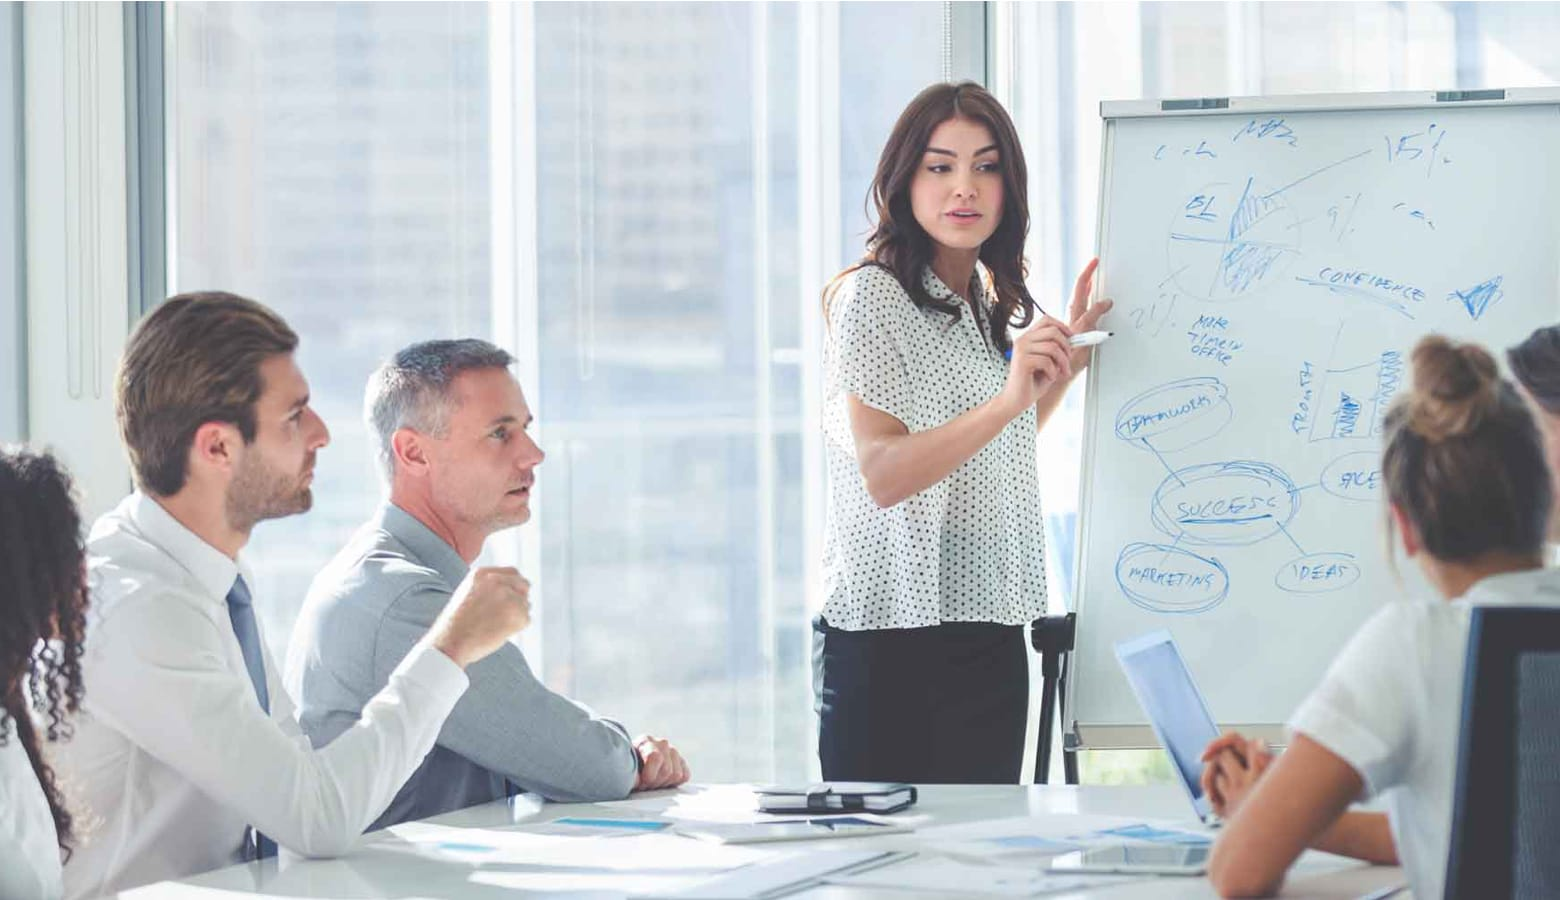 A business woman using a flip chart to note ideas from colleagues who are seated around a table in a meeting room